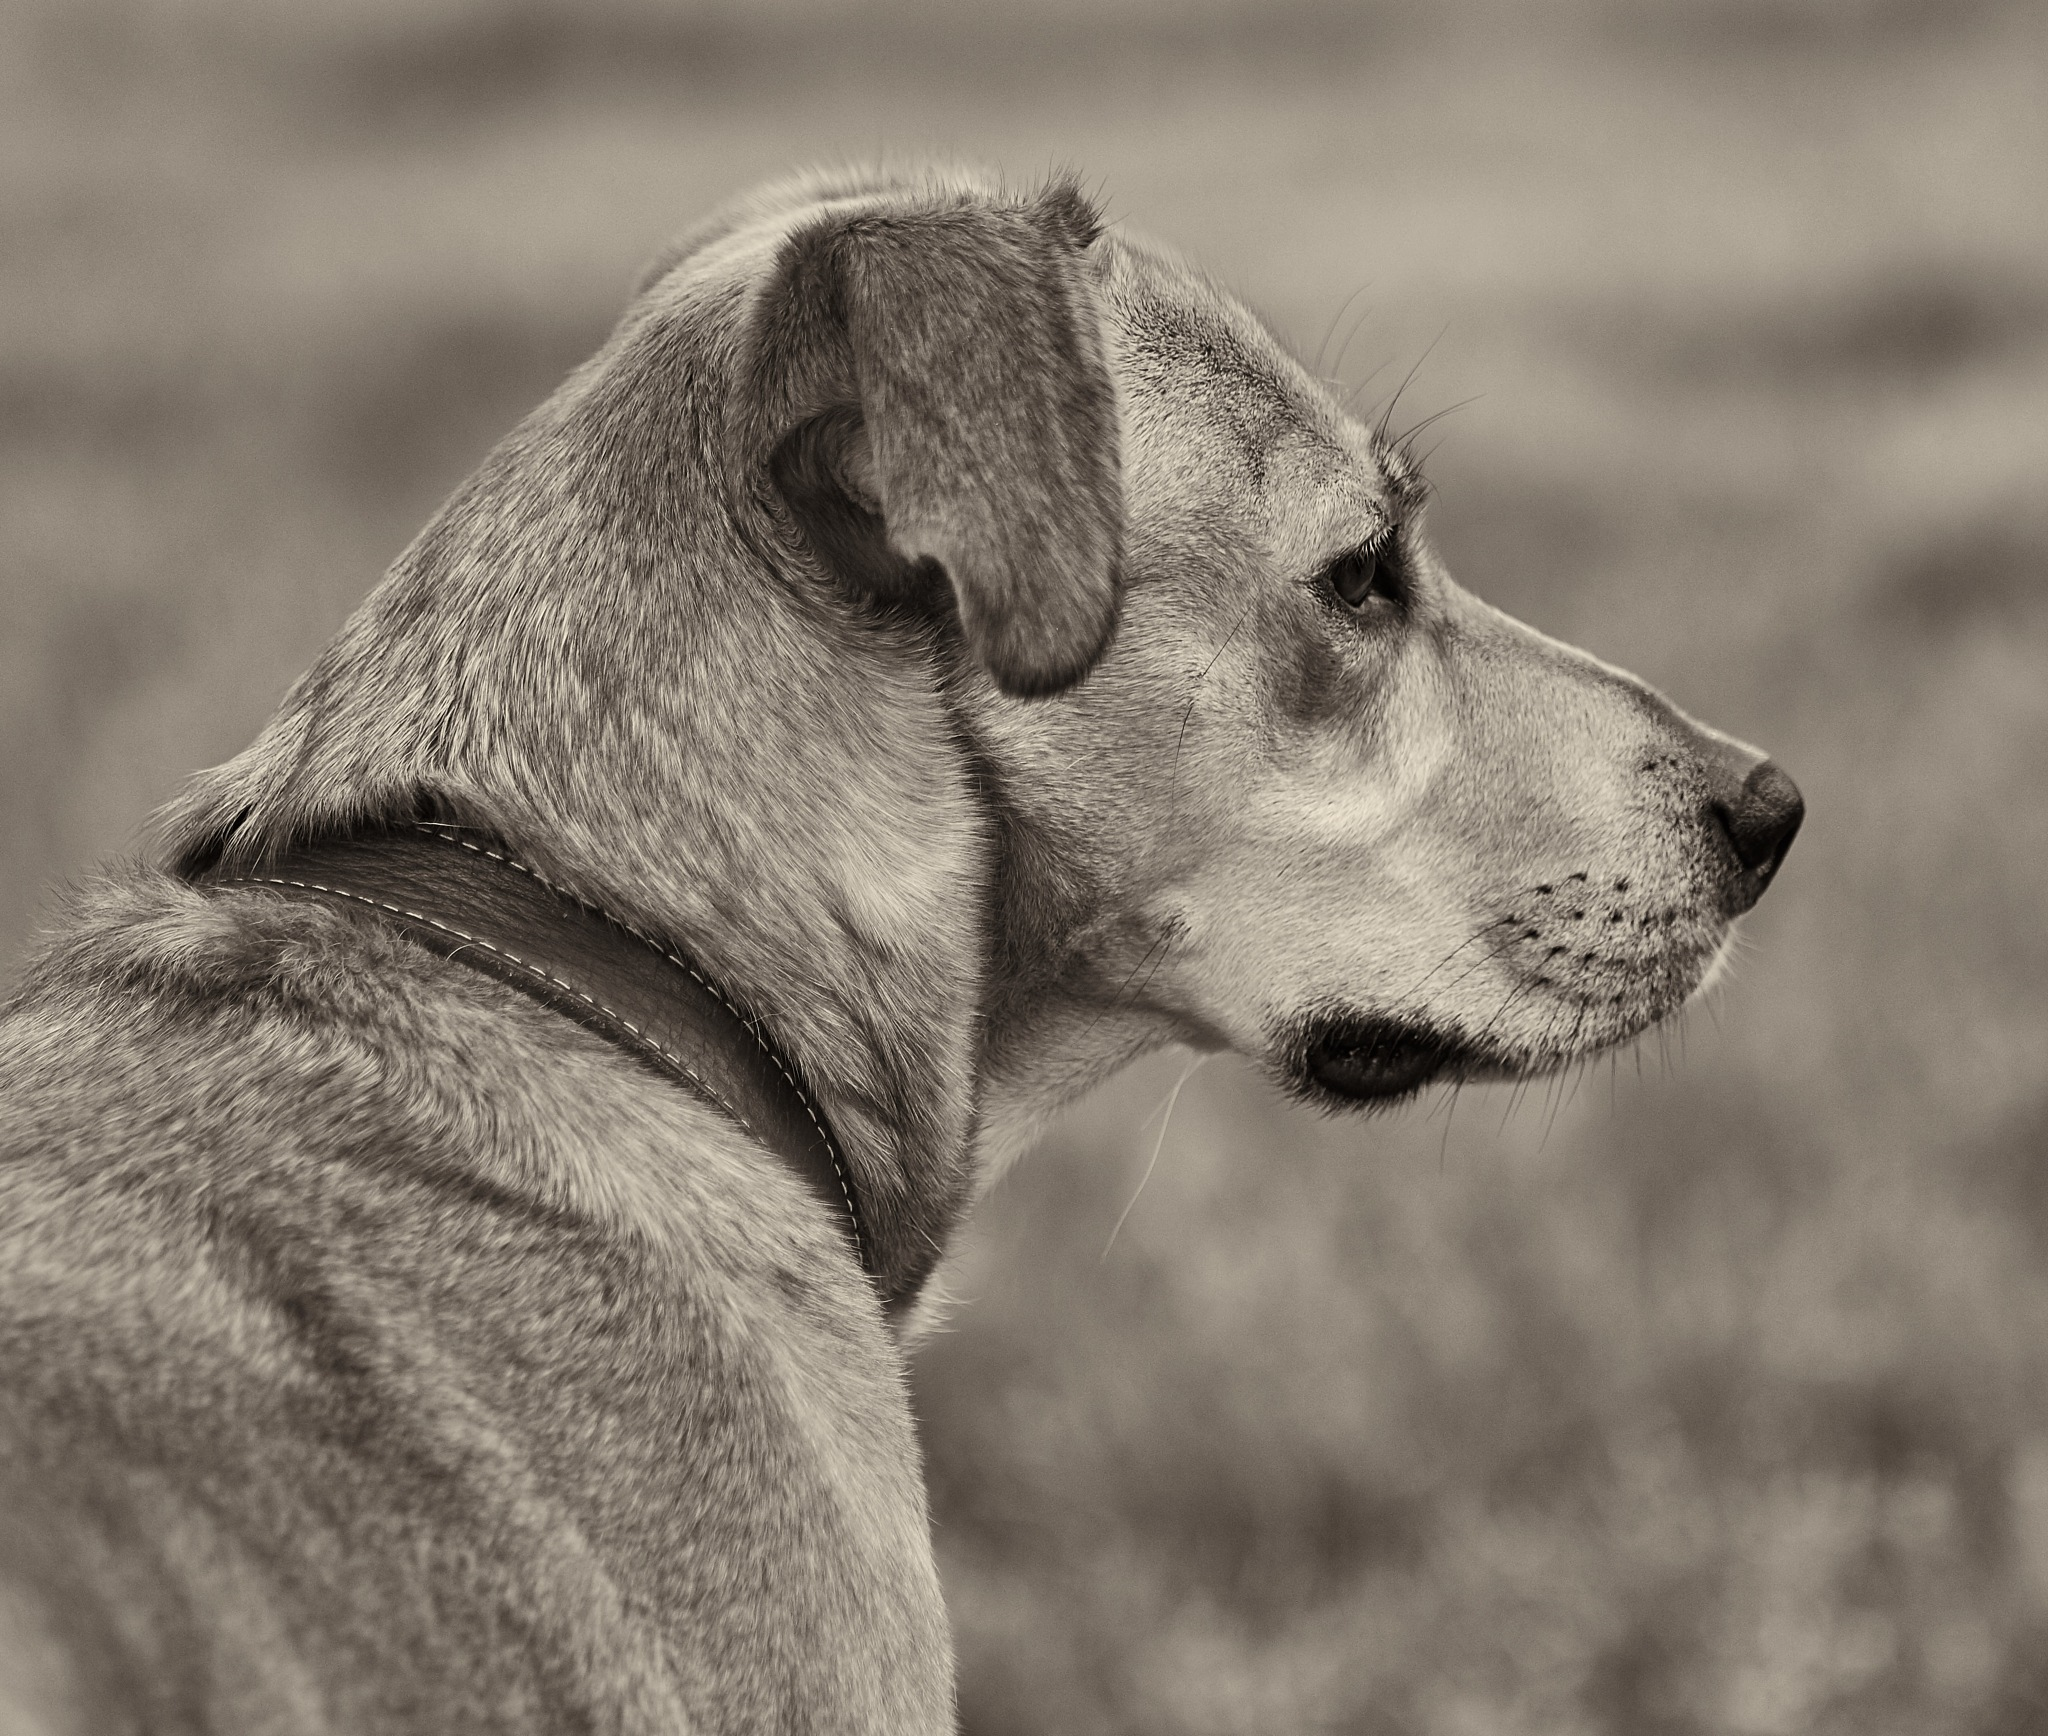 Mabel in Sepia by Holly Jennings